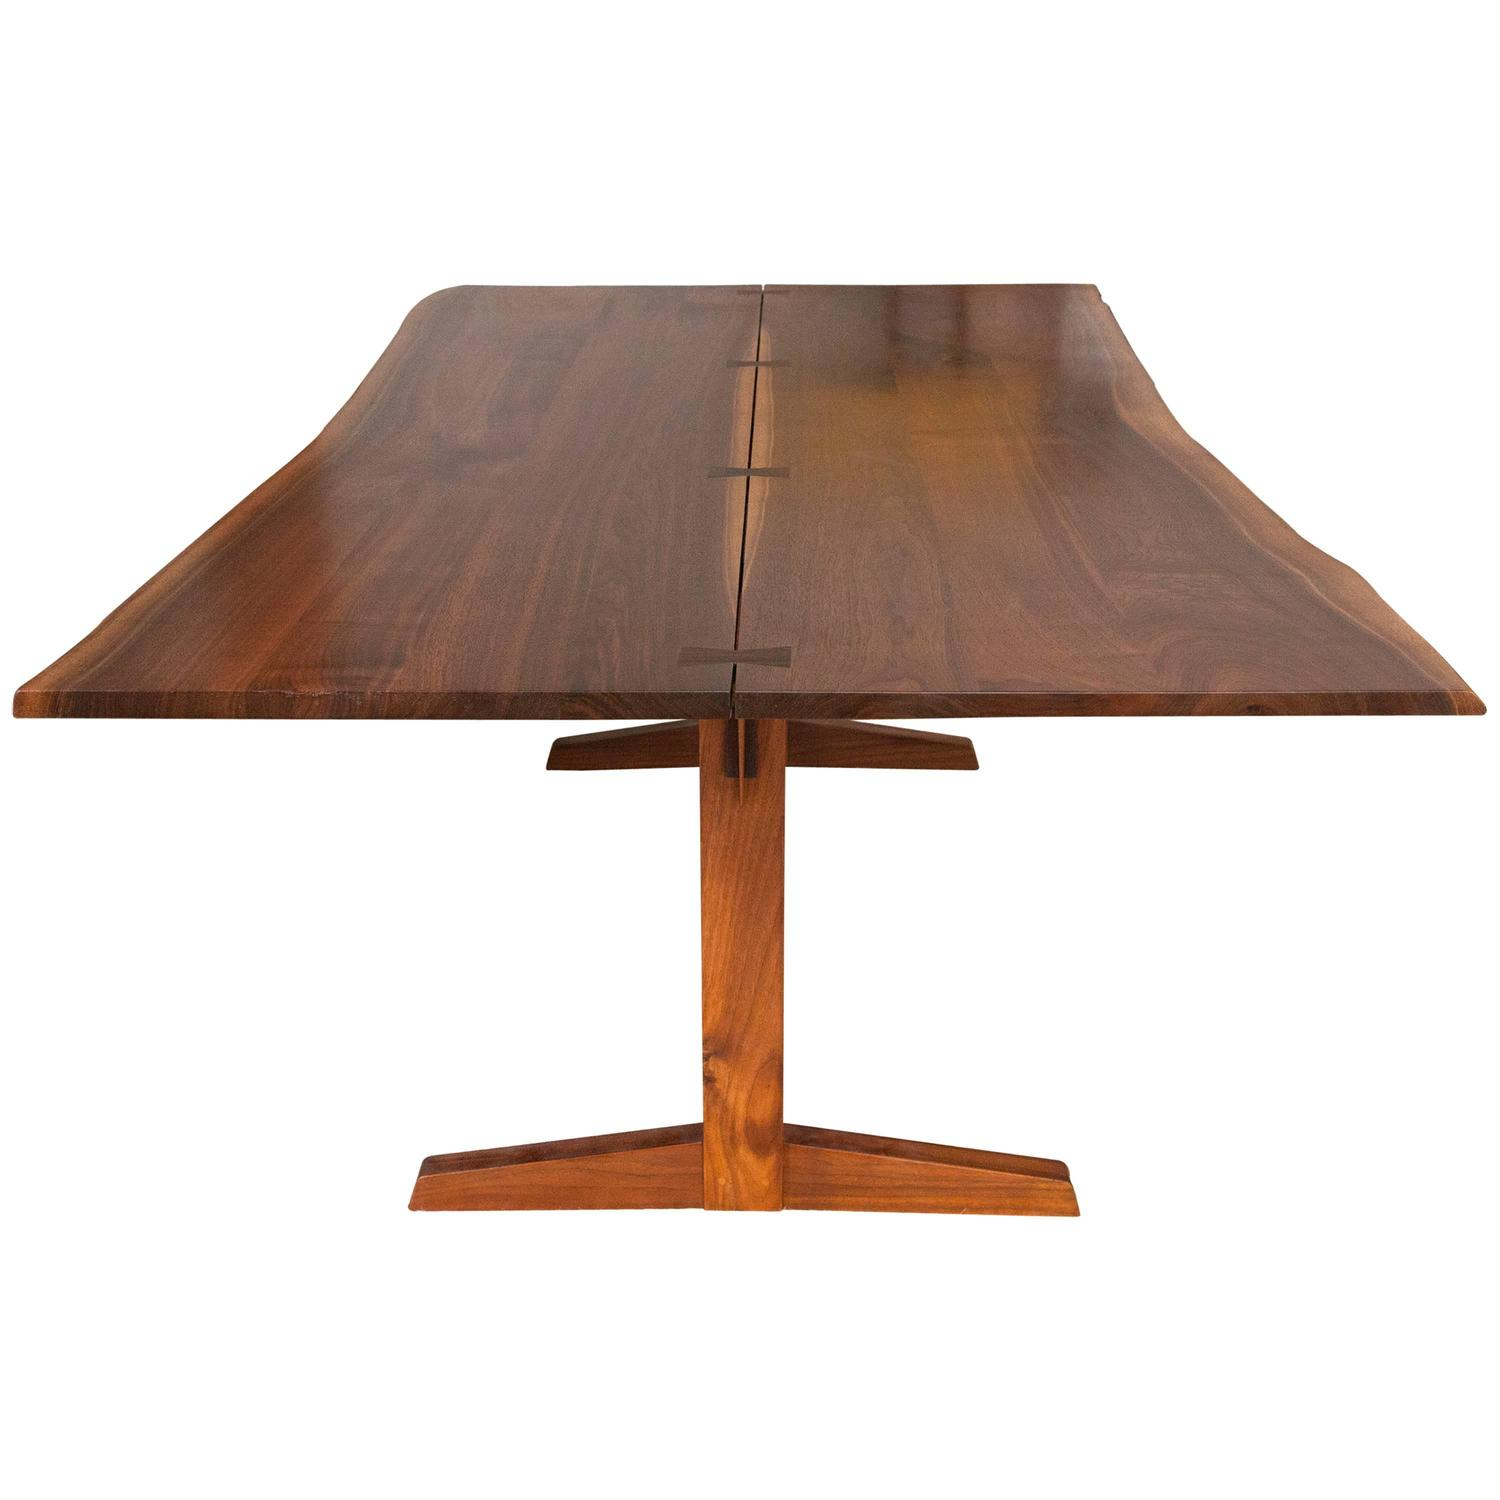 George nakashima trestle dining table with rosewood for Table joints